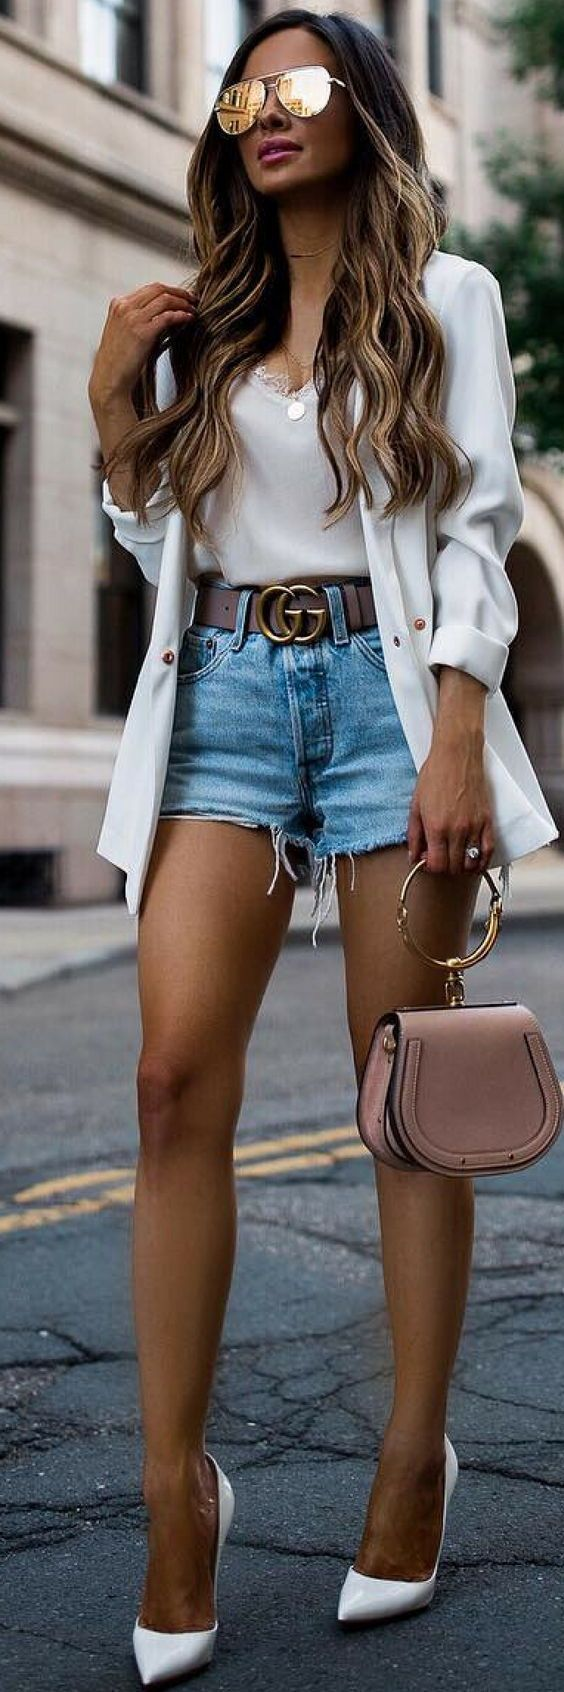 22 Casual Summer Outfits That Make You Look Fabulous –